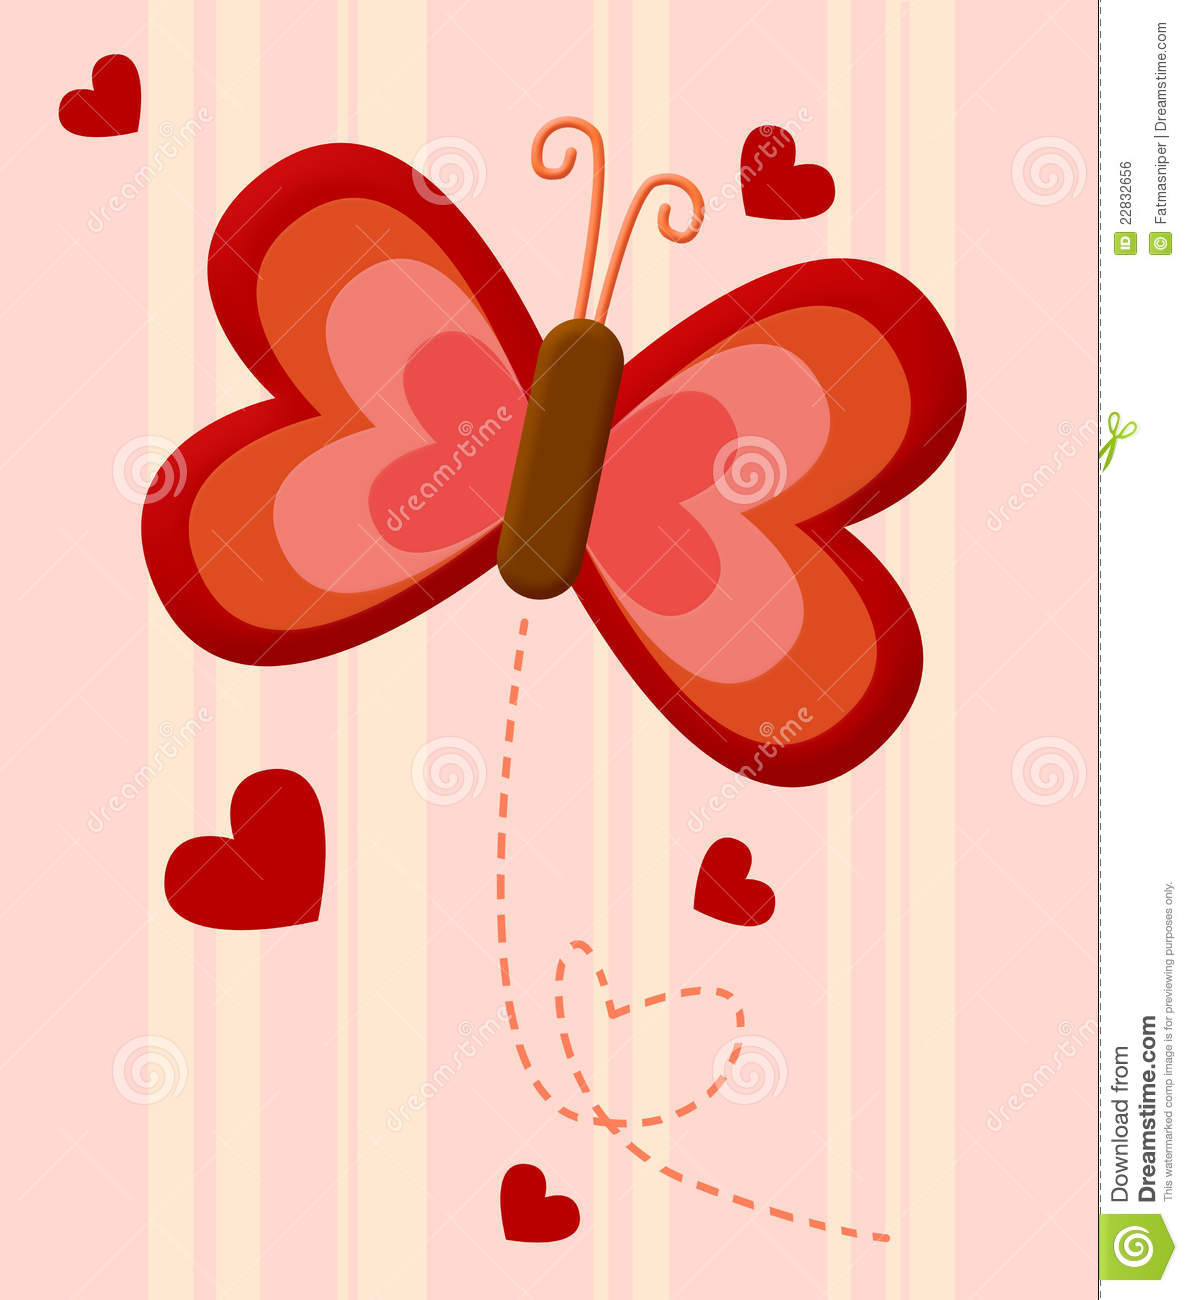 Red Butterfly Love Royalty Free Stock Image - Image: 22832656